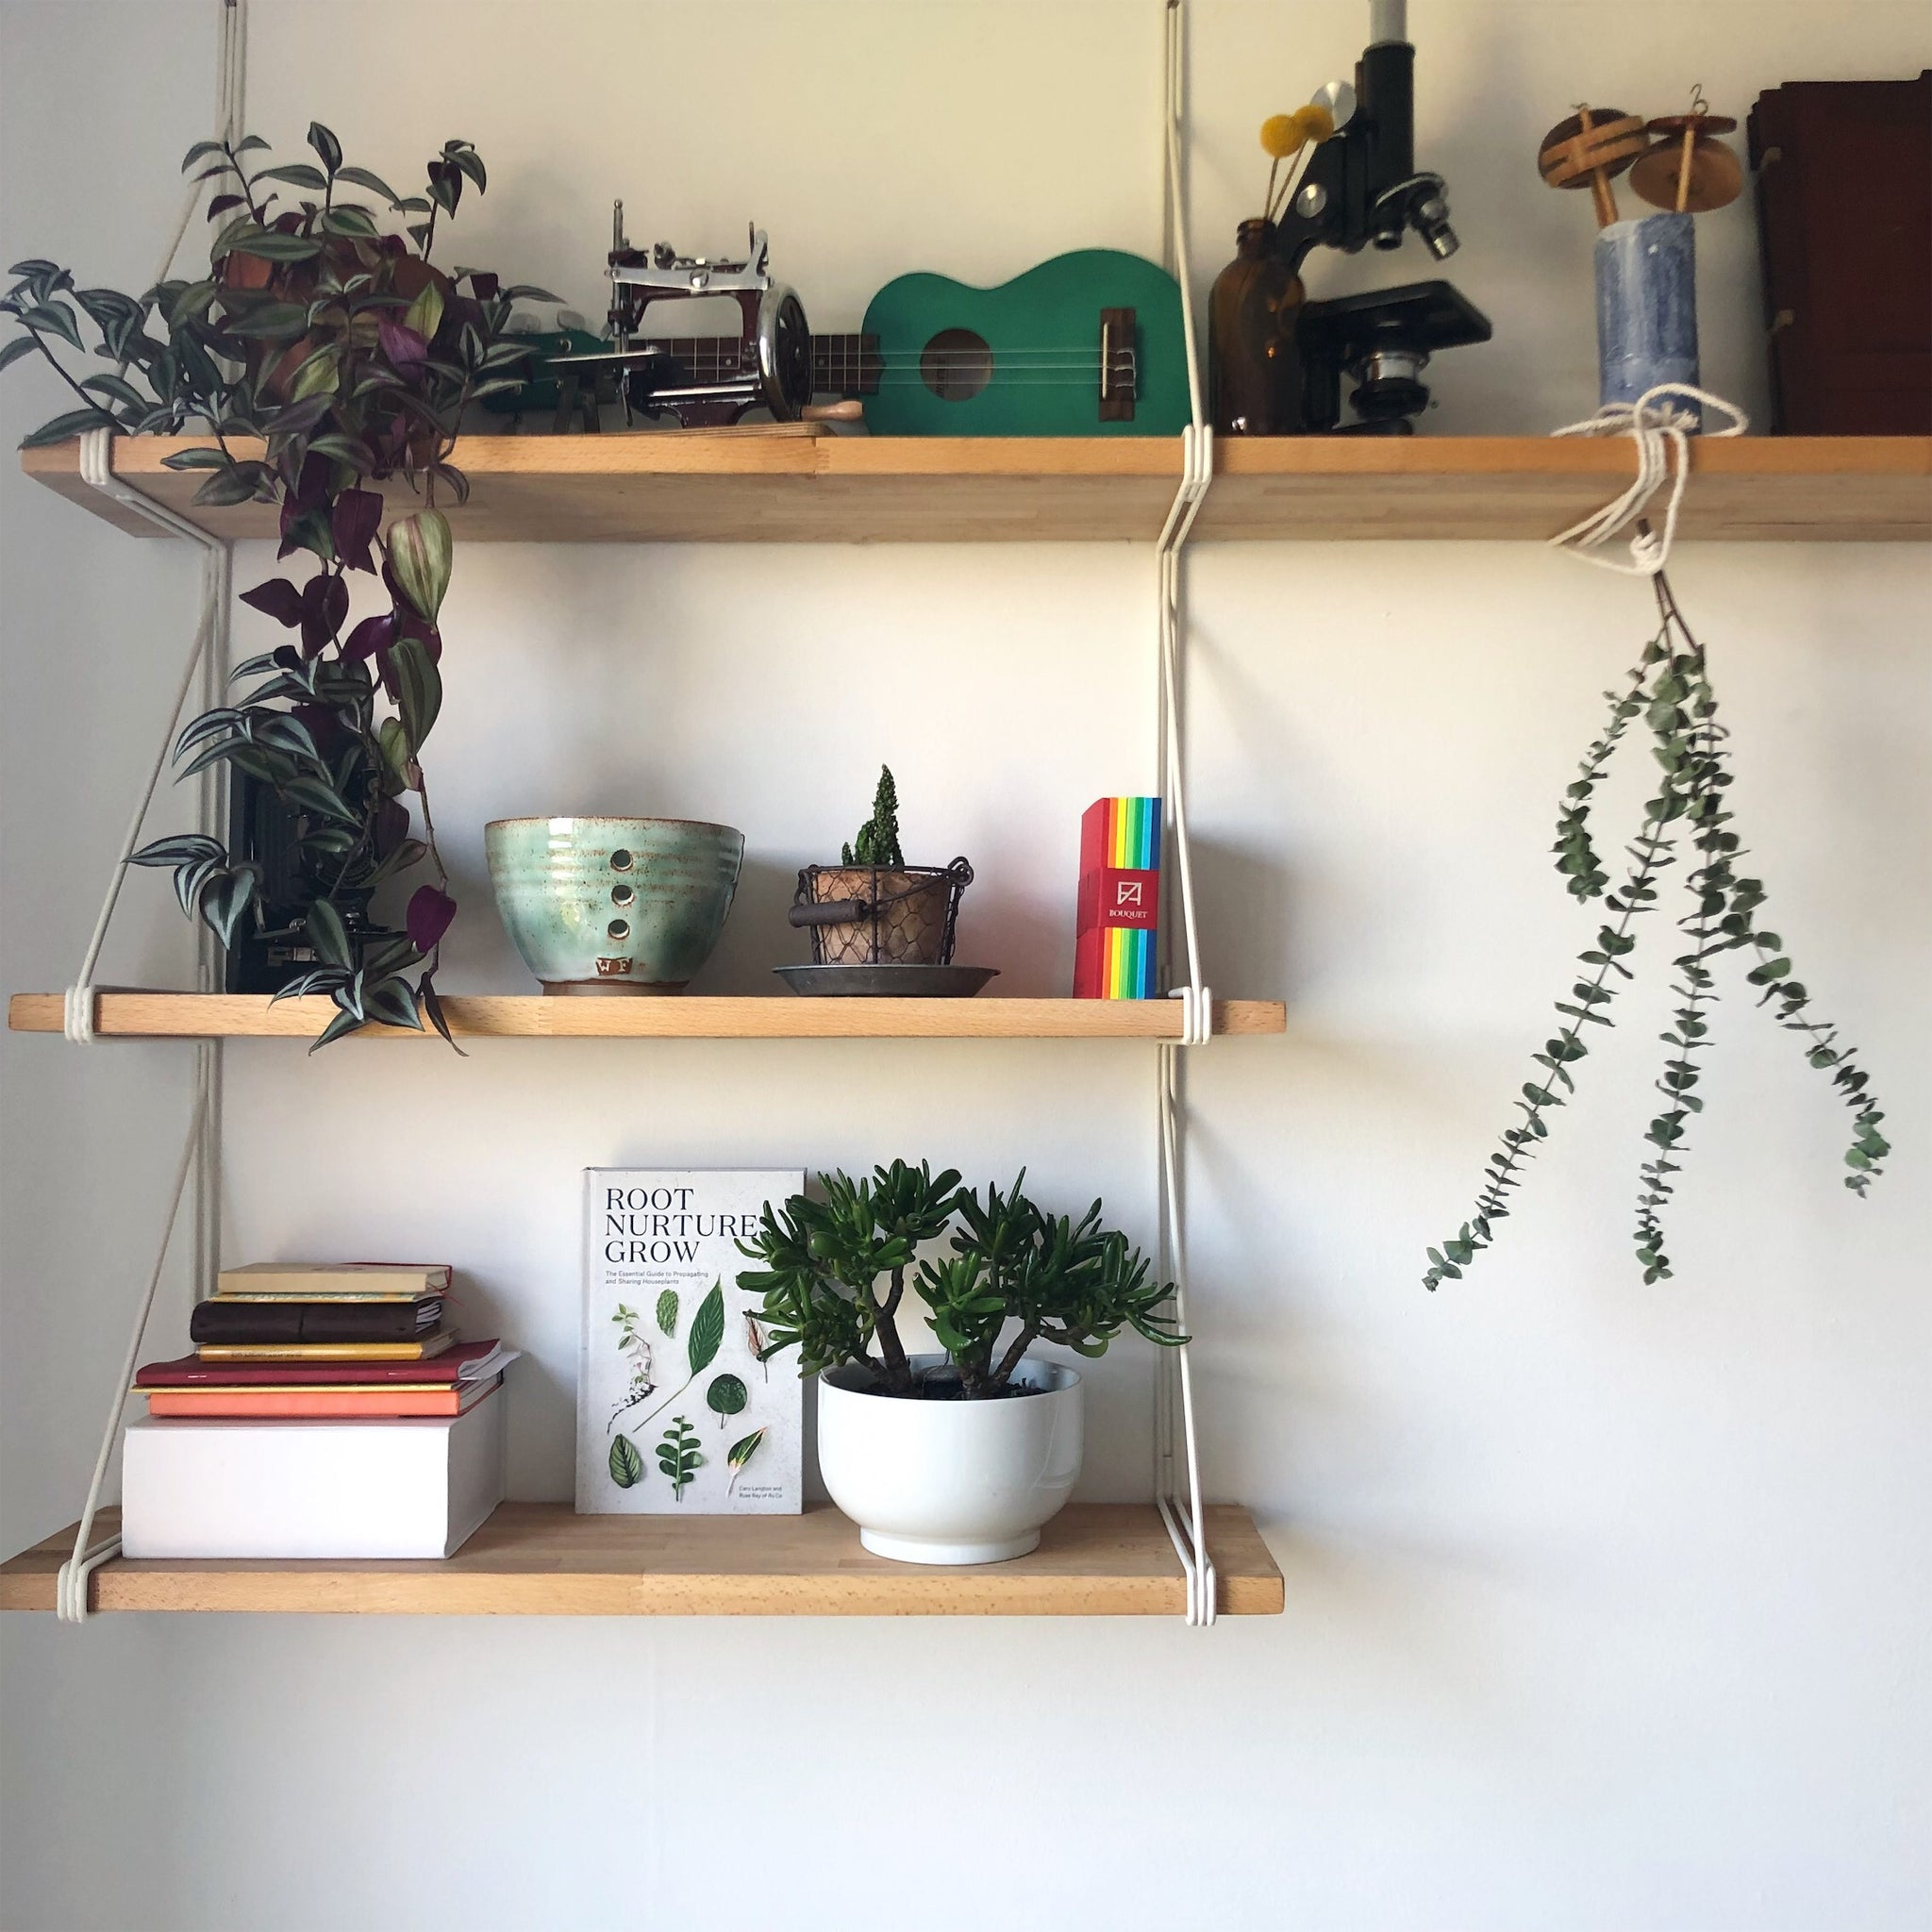 A set of hanging shelves, with healthy plants on all shelves along with some books, a ukulele, a microscope and a vase filled with spindles